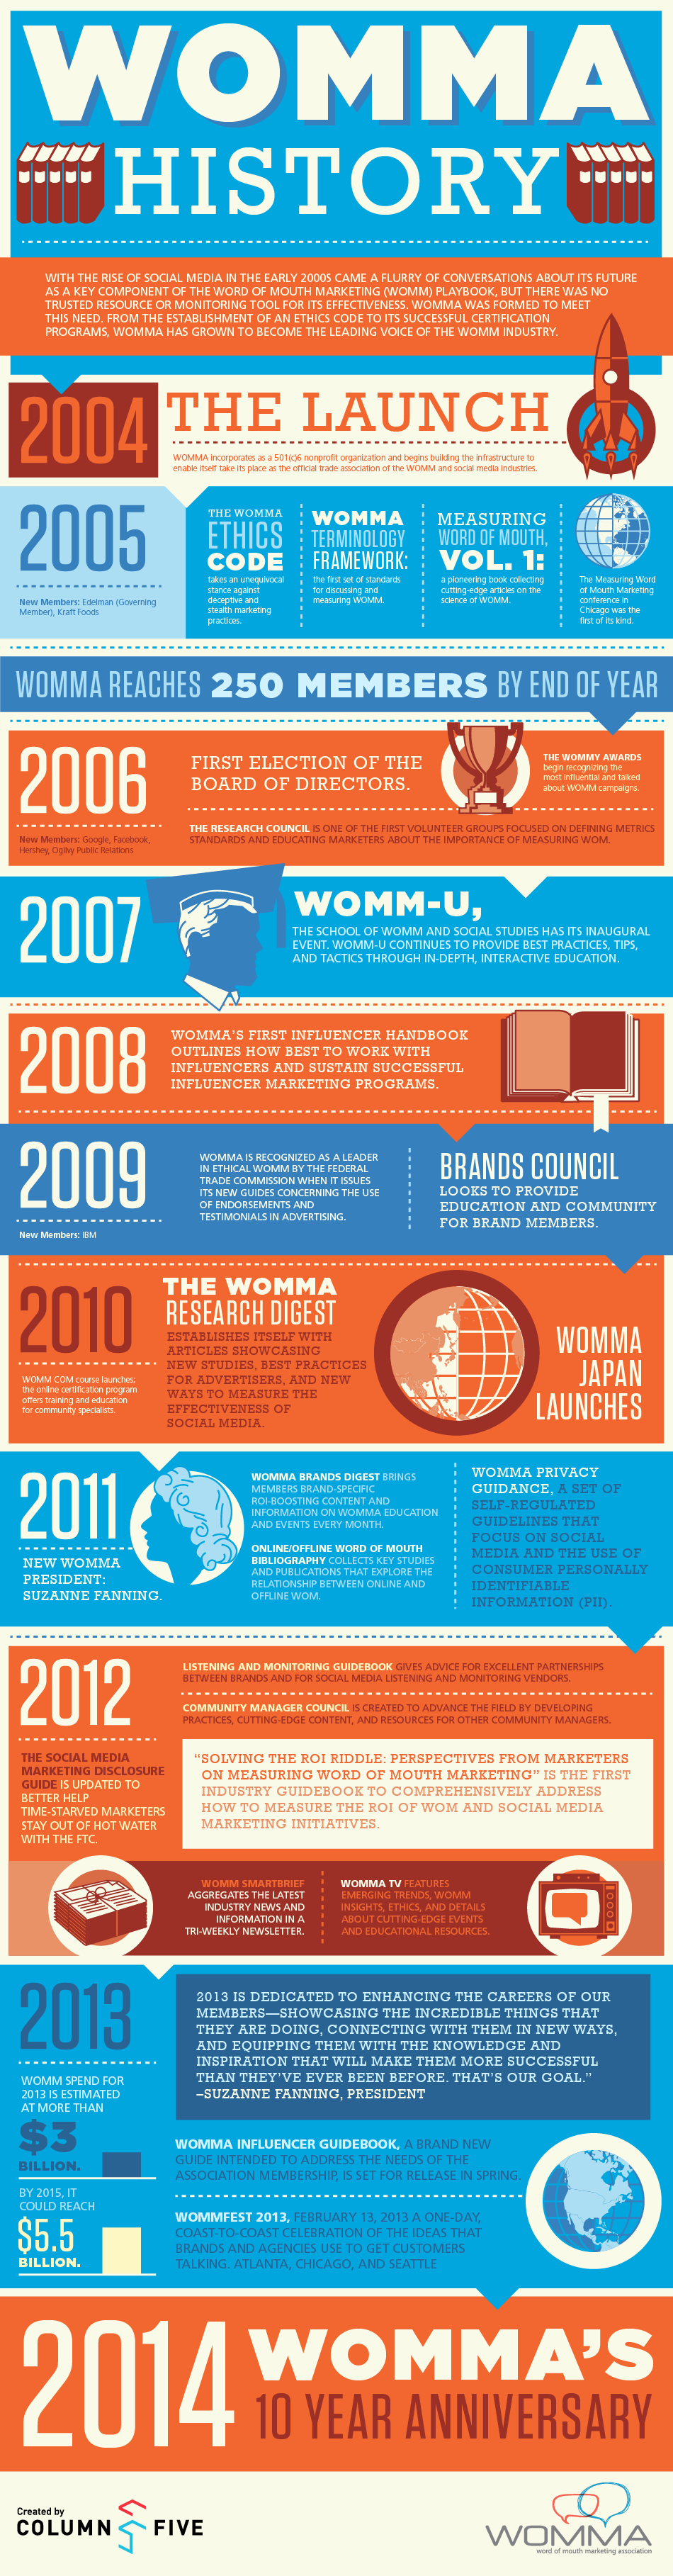 Infographic: WOMMA Timeline